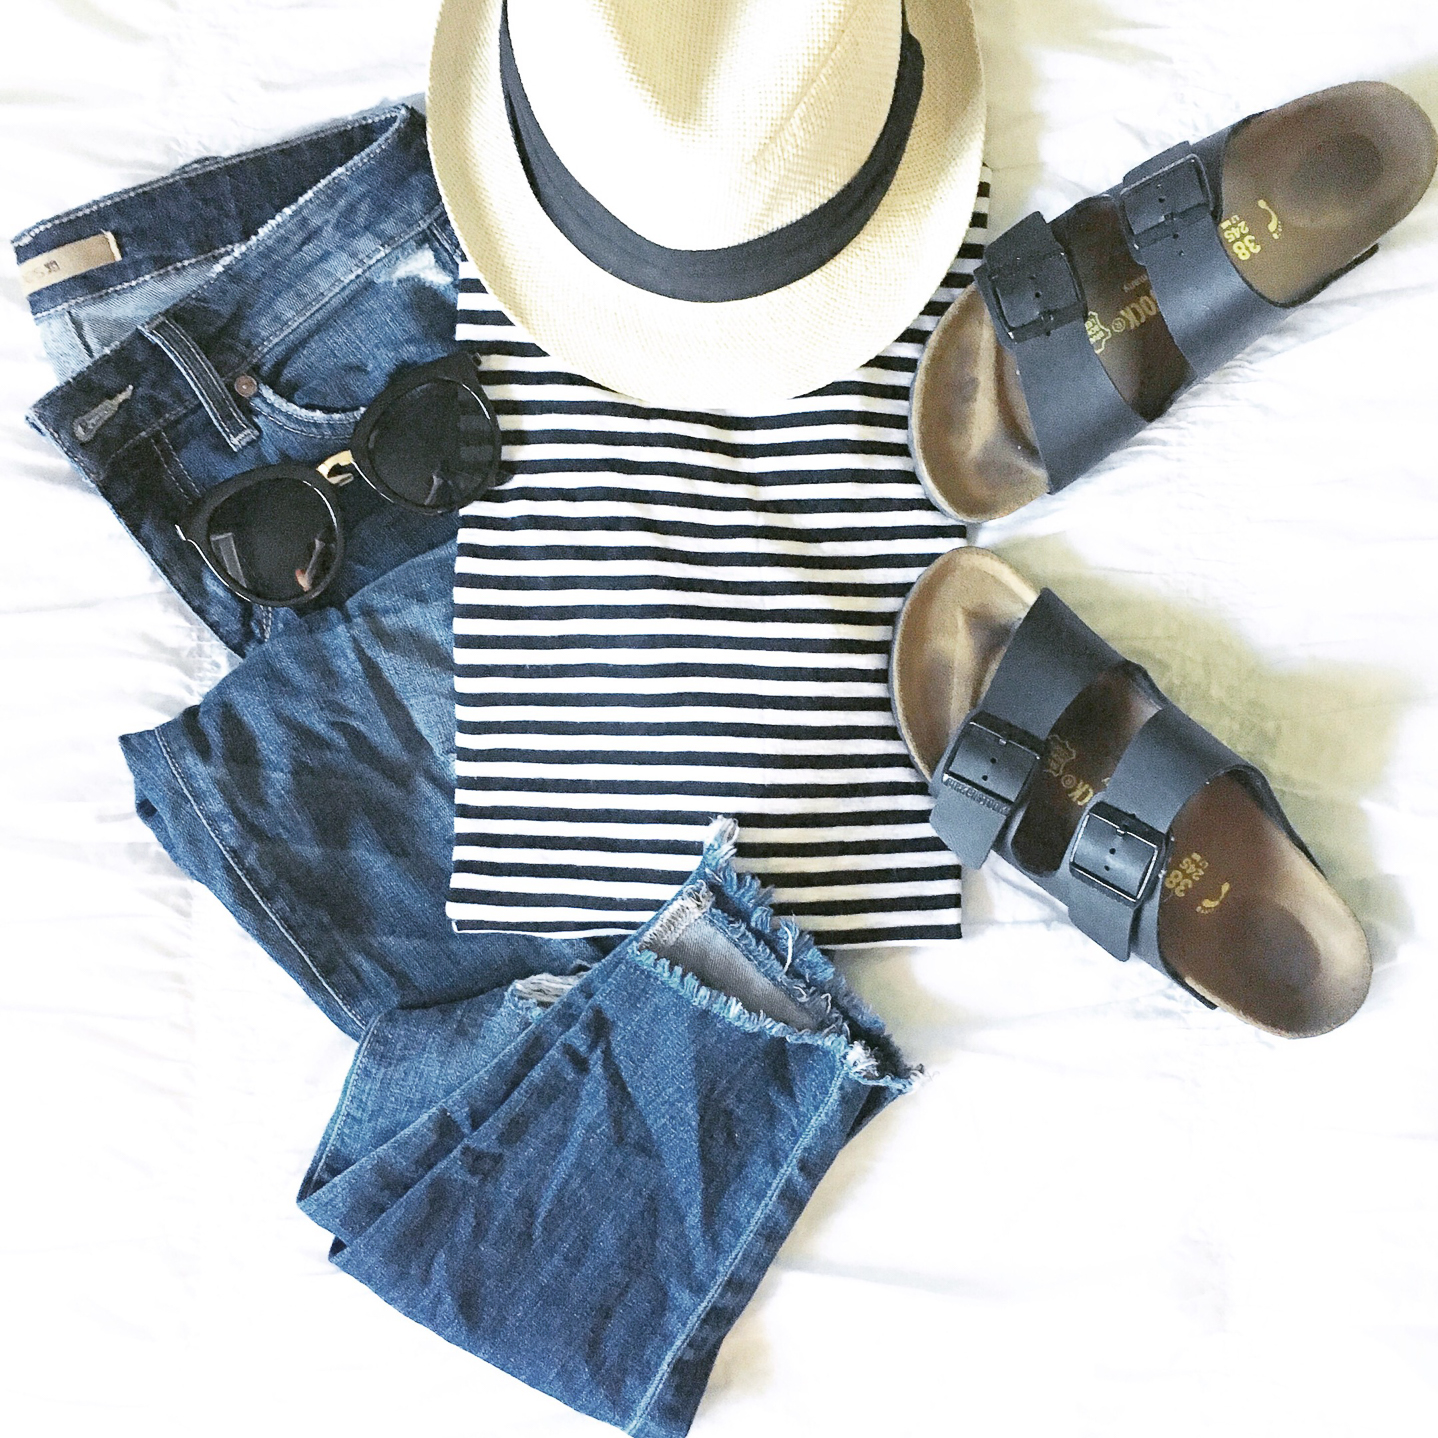 my favorite outfits for summer, Instagram, life lately, casual flatlay stripes denim birkenstocks- edora